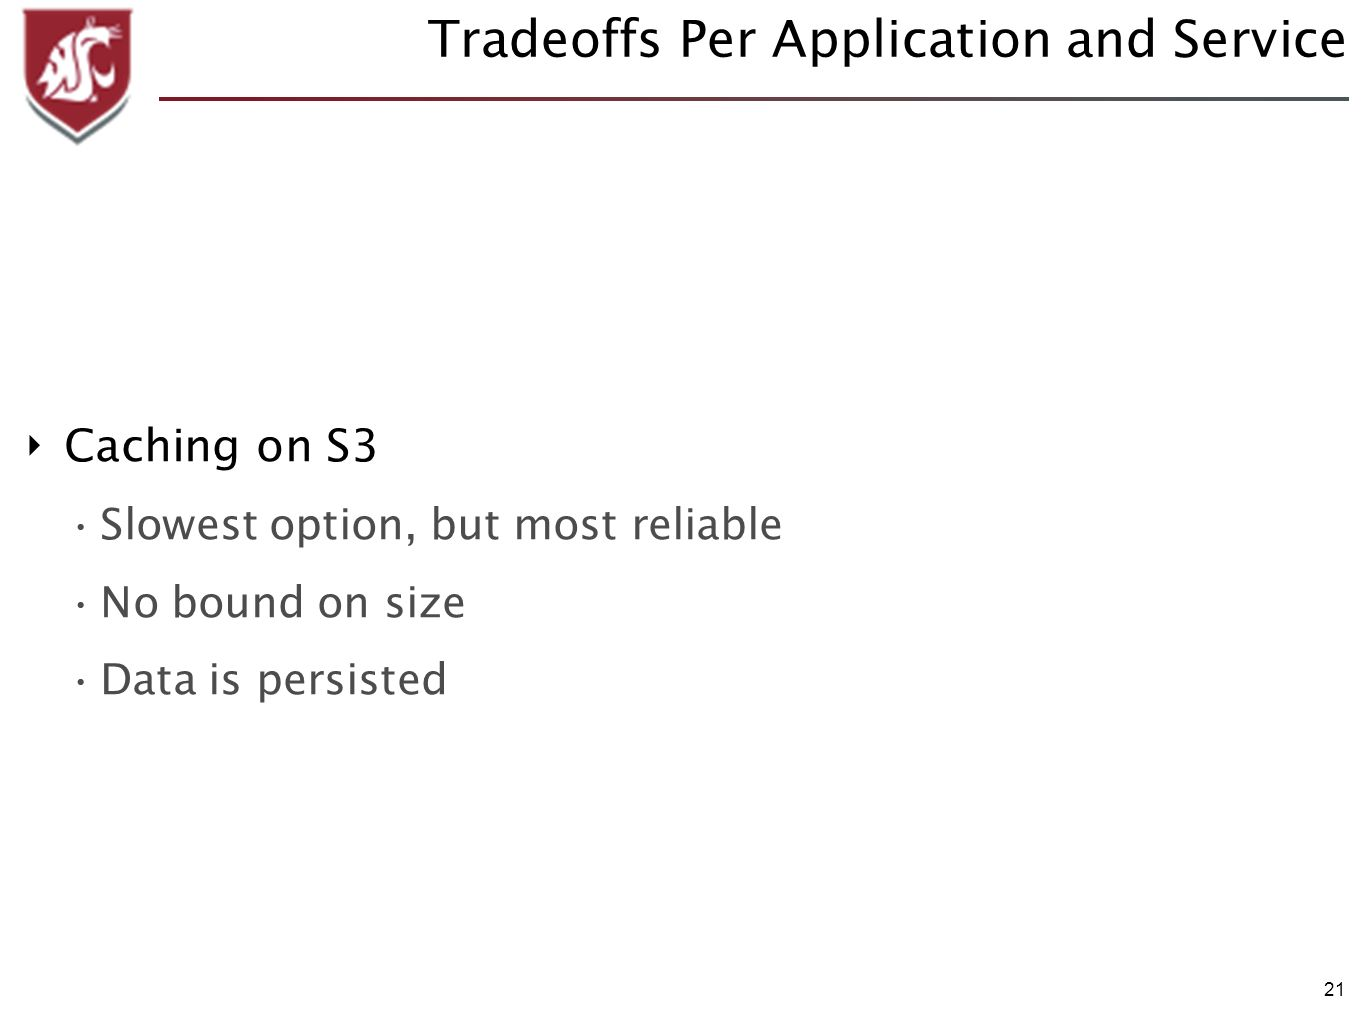 21 Tradeoffs Per Application and Service Caching on S3 Slowest option, but most reliable No bound on size Data is persisted